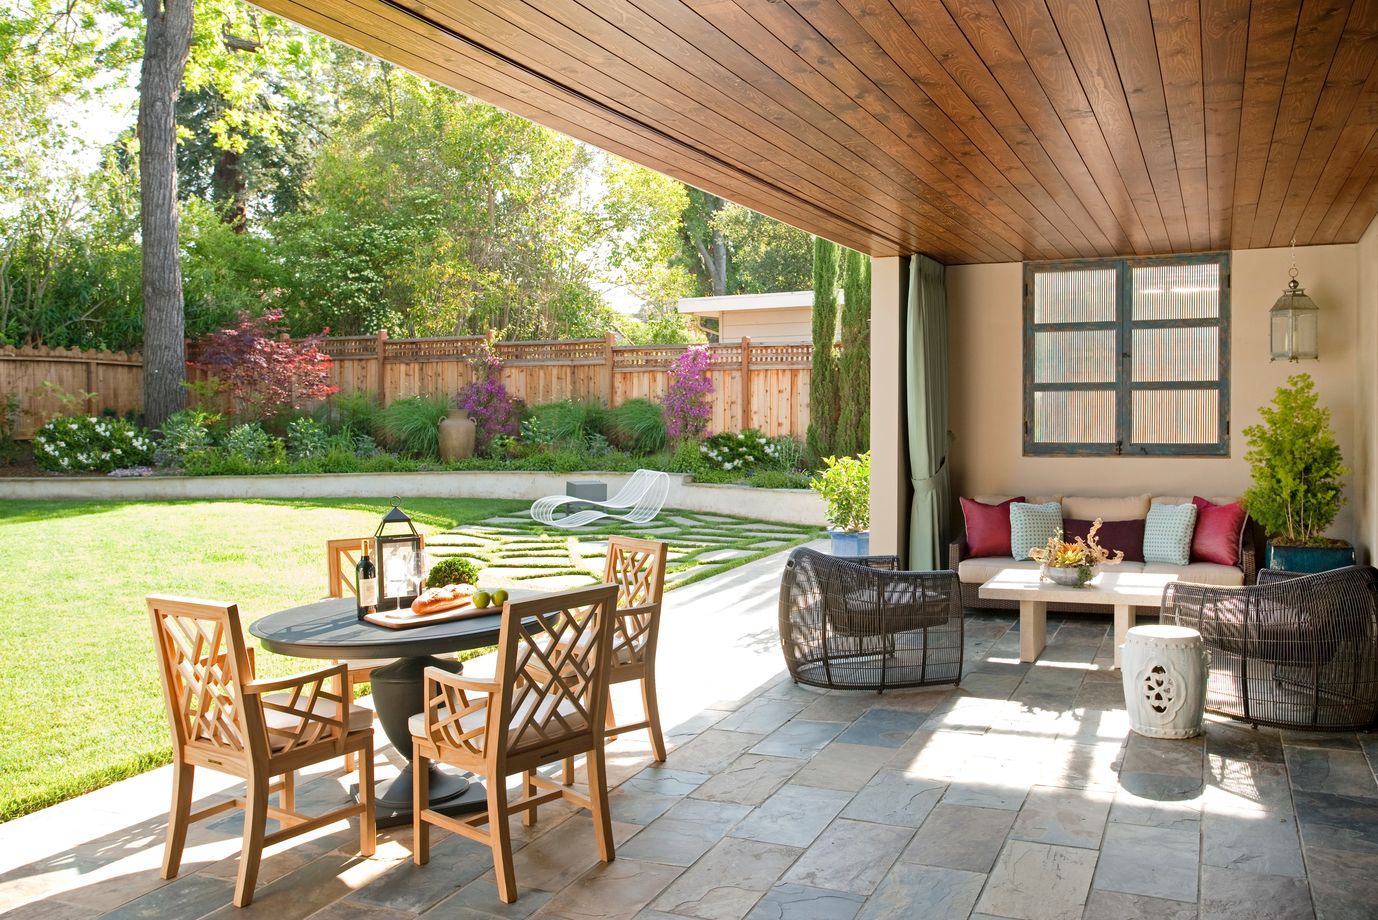 Outdoor living 8 ideas to get the most out of your space for Small patio remodel ideas